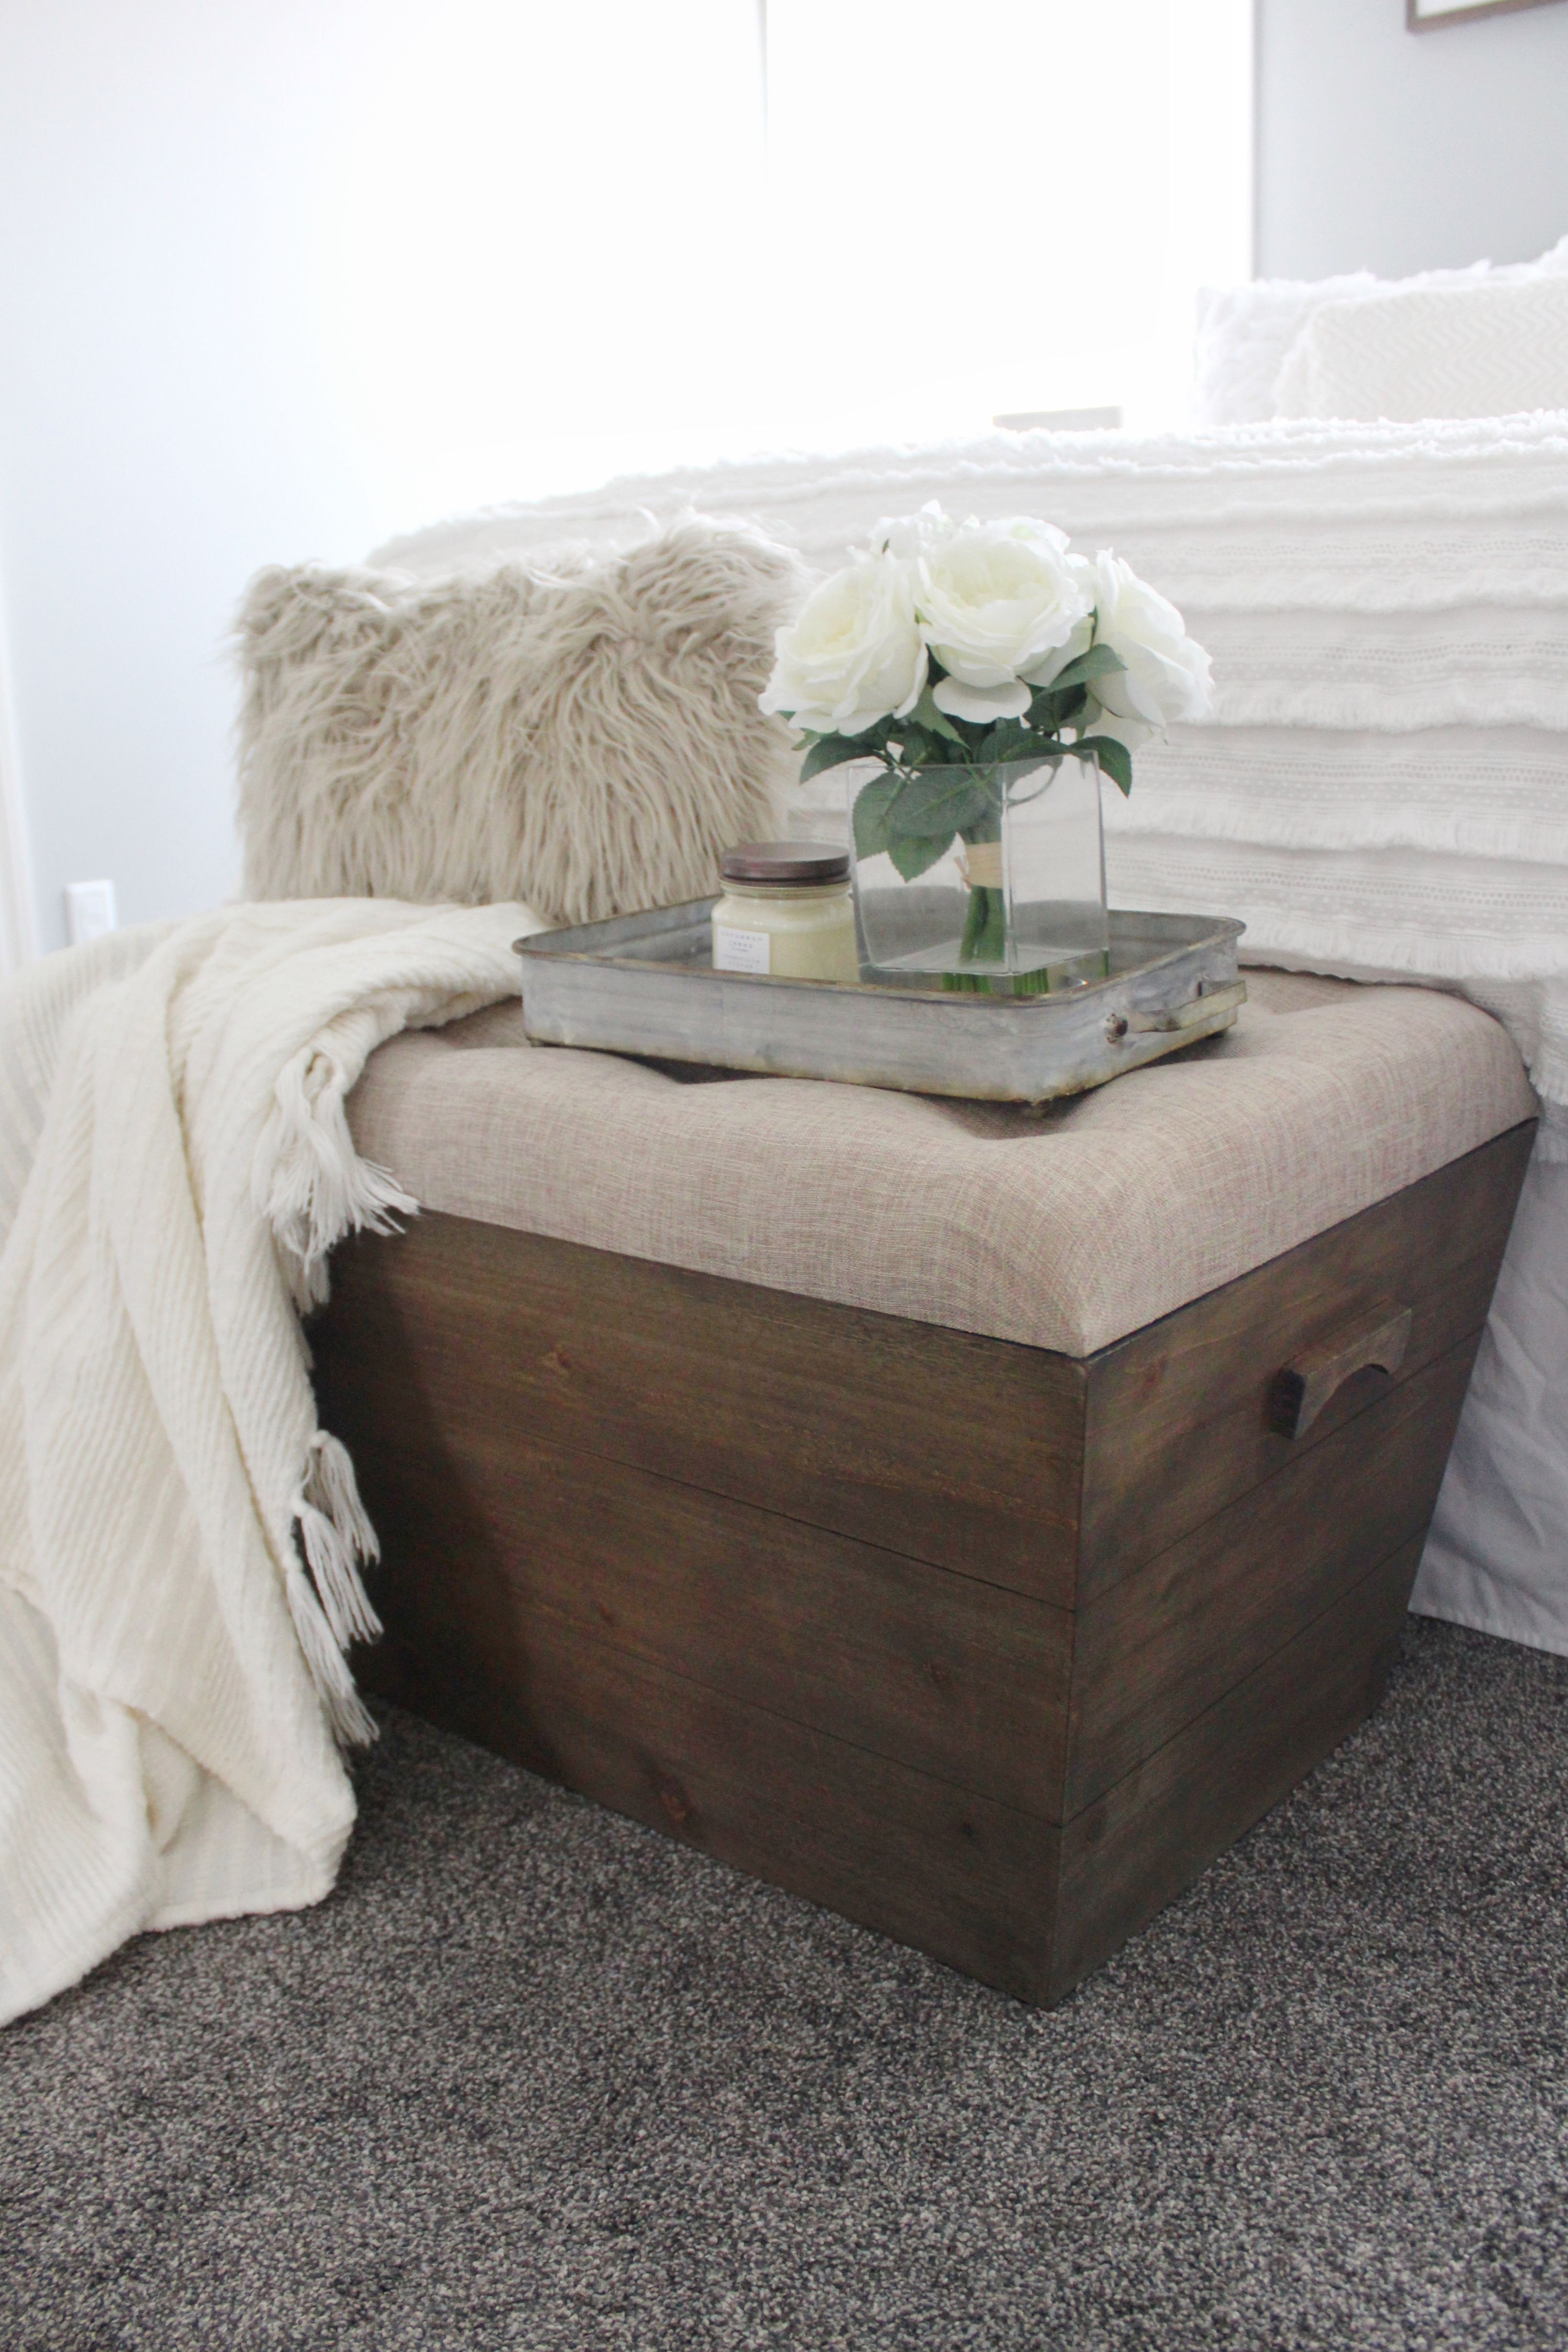 Slatted Wood Crate Bench Crate bench, Living room bench